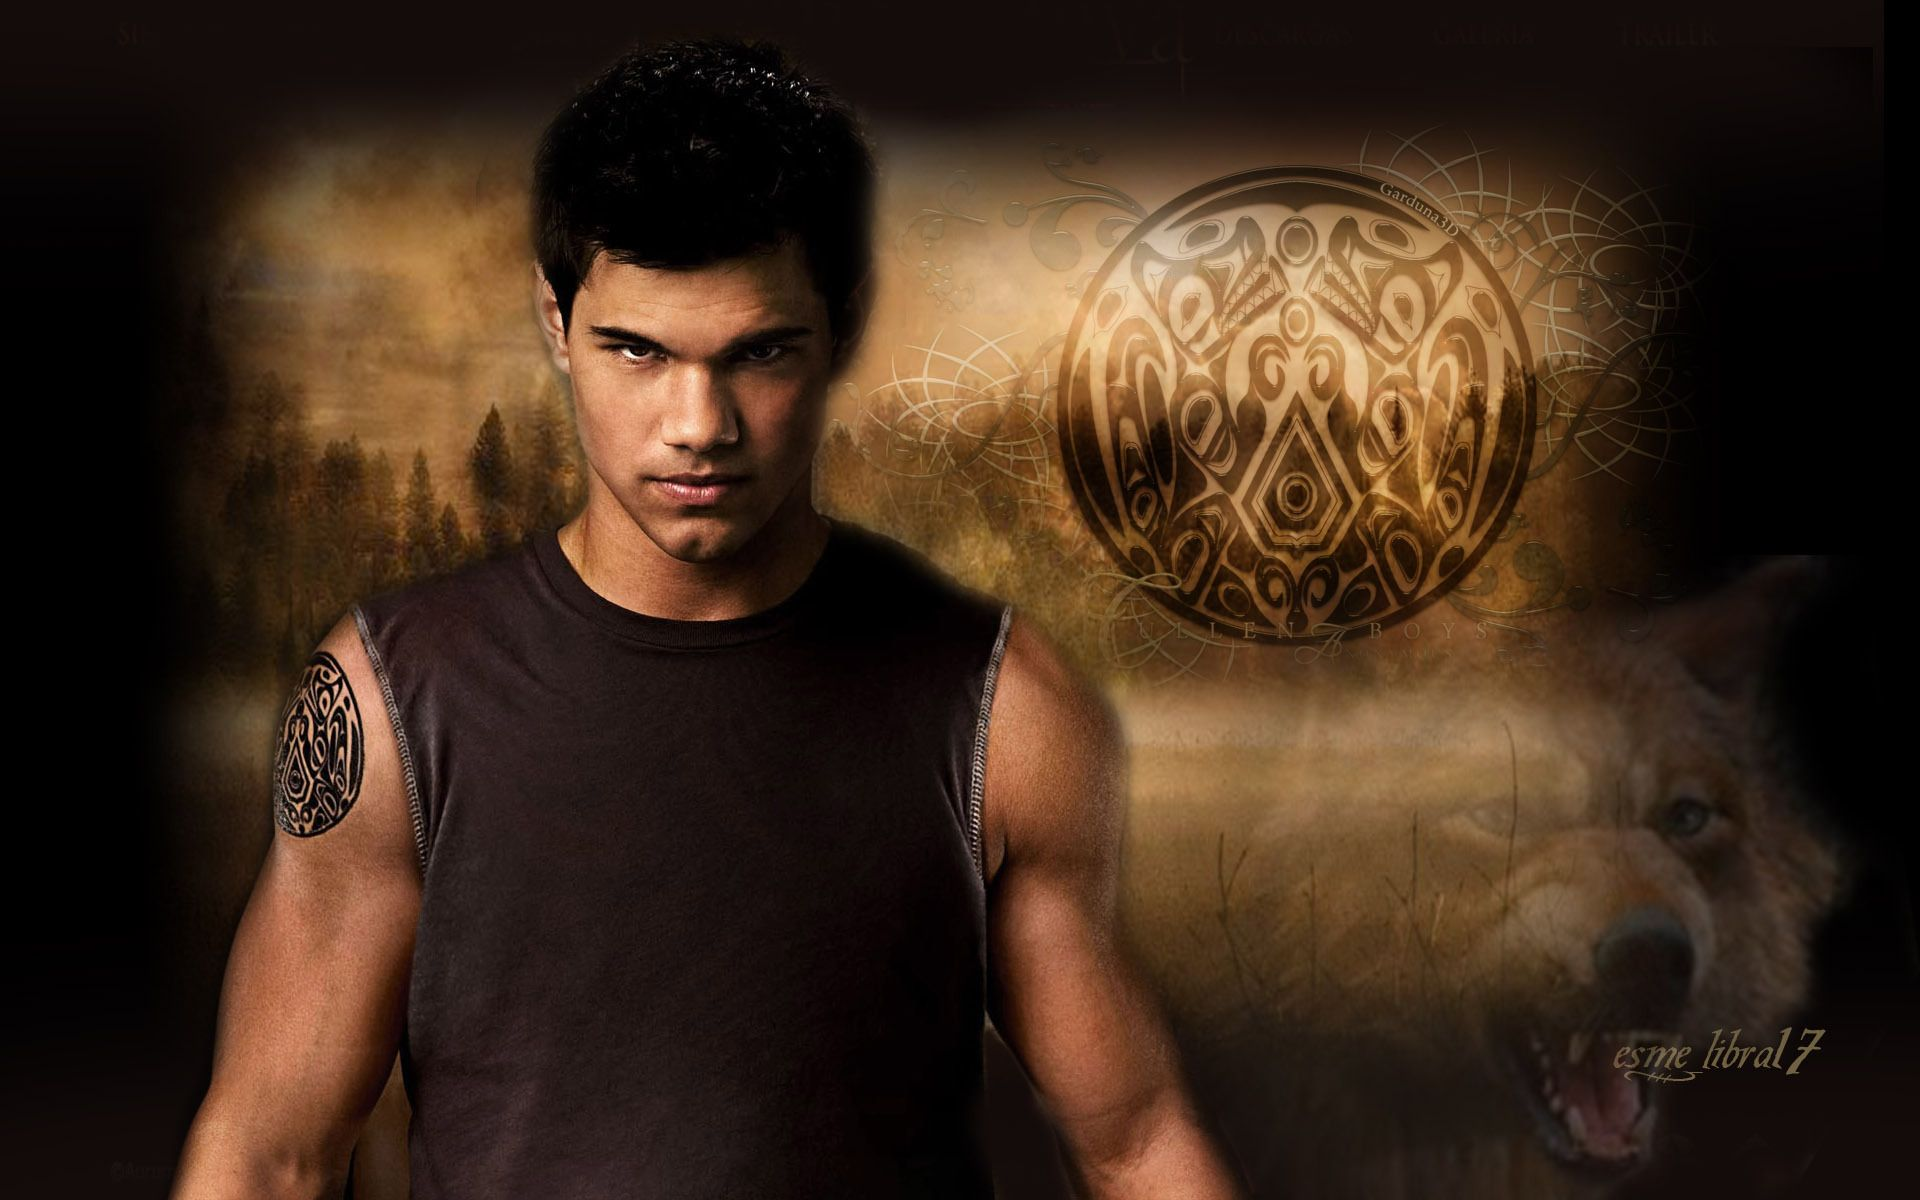 1920x1200 77+] Jacob Twilight Wallpaper on WallpaperSafari